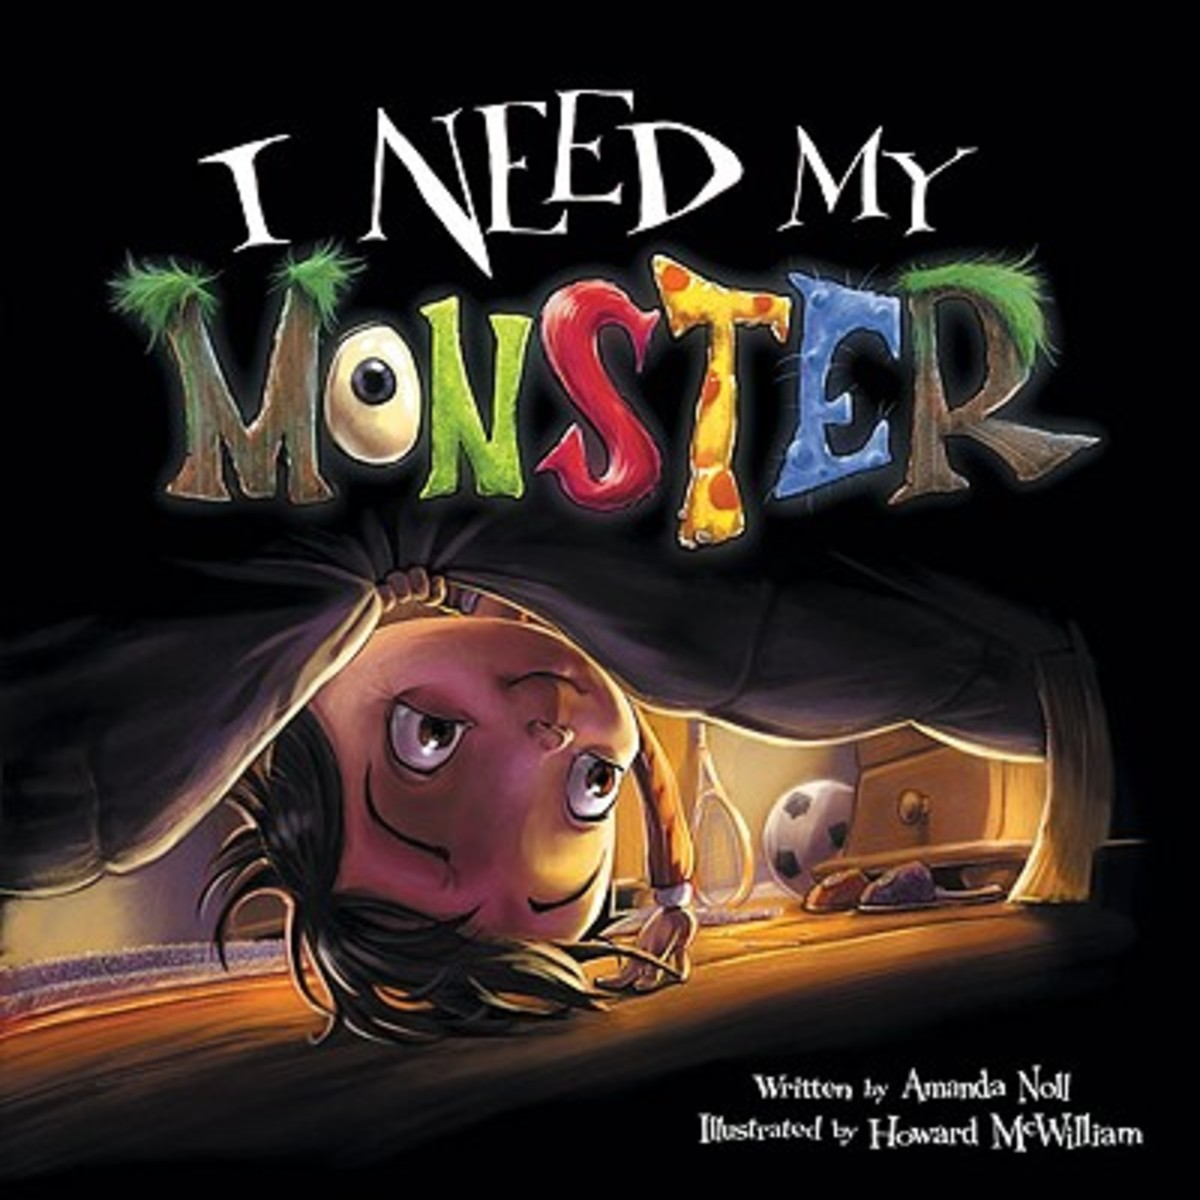 I Need My Monster by Amanda Noll and Howard McWilliam